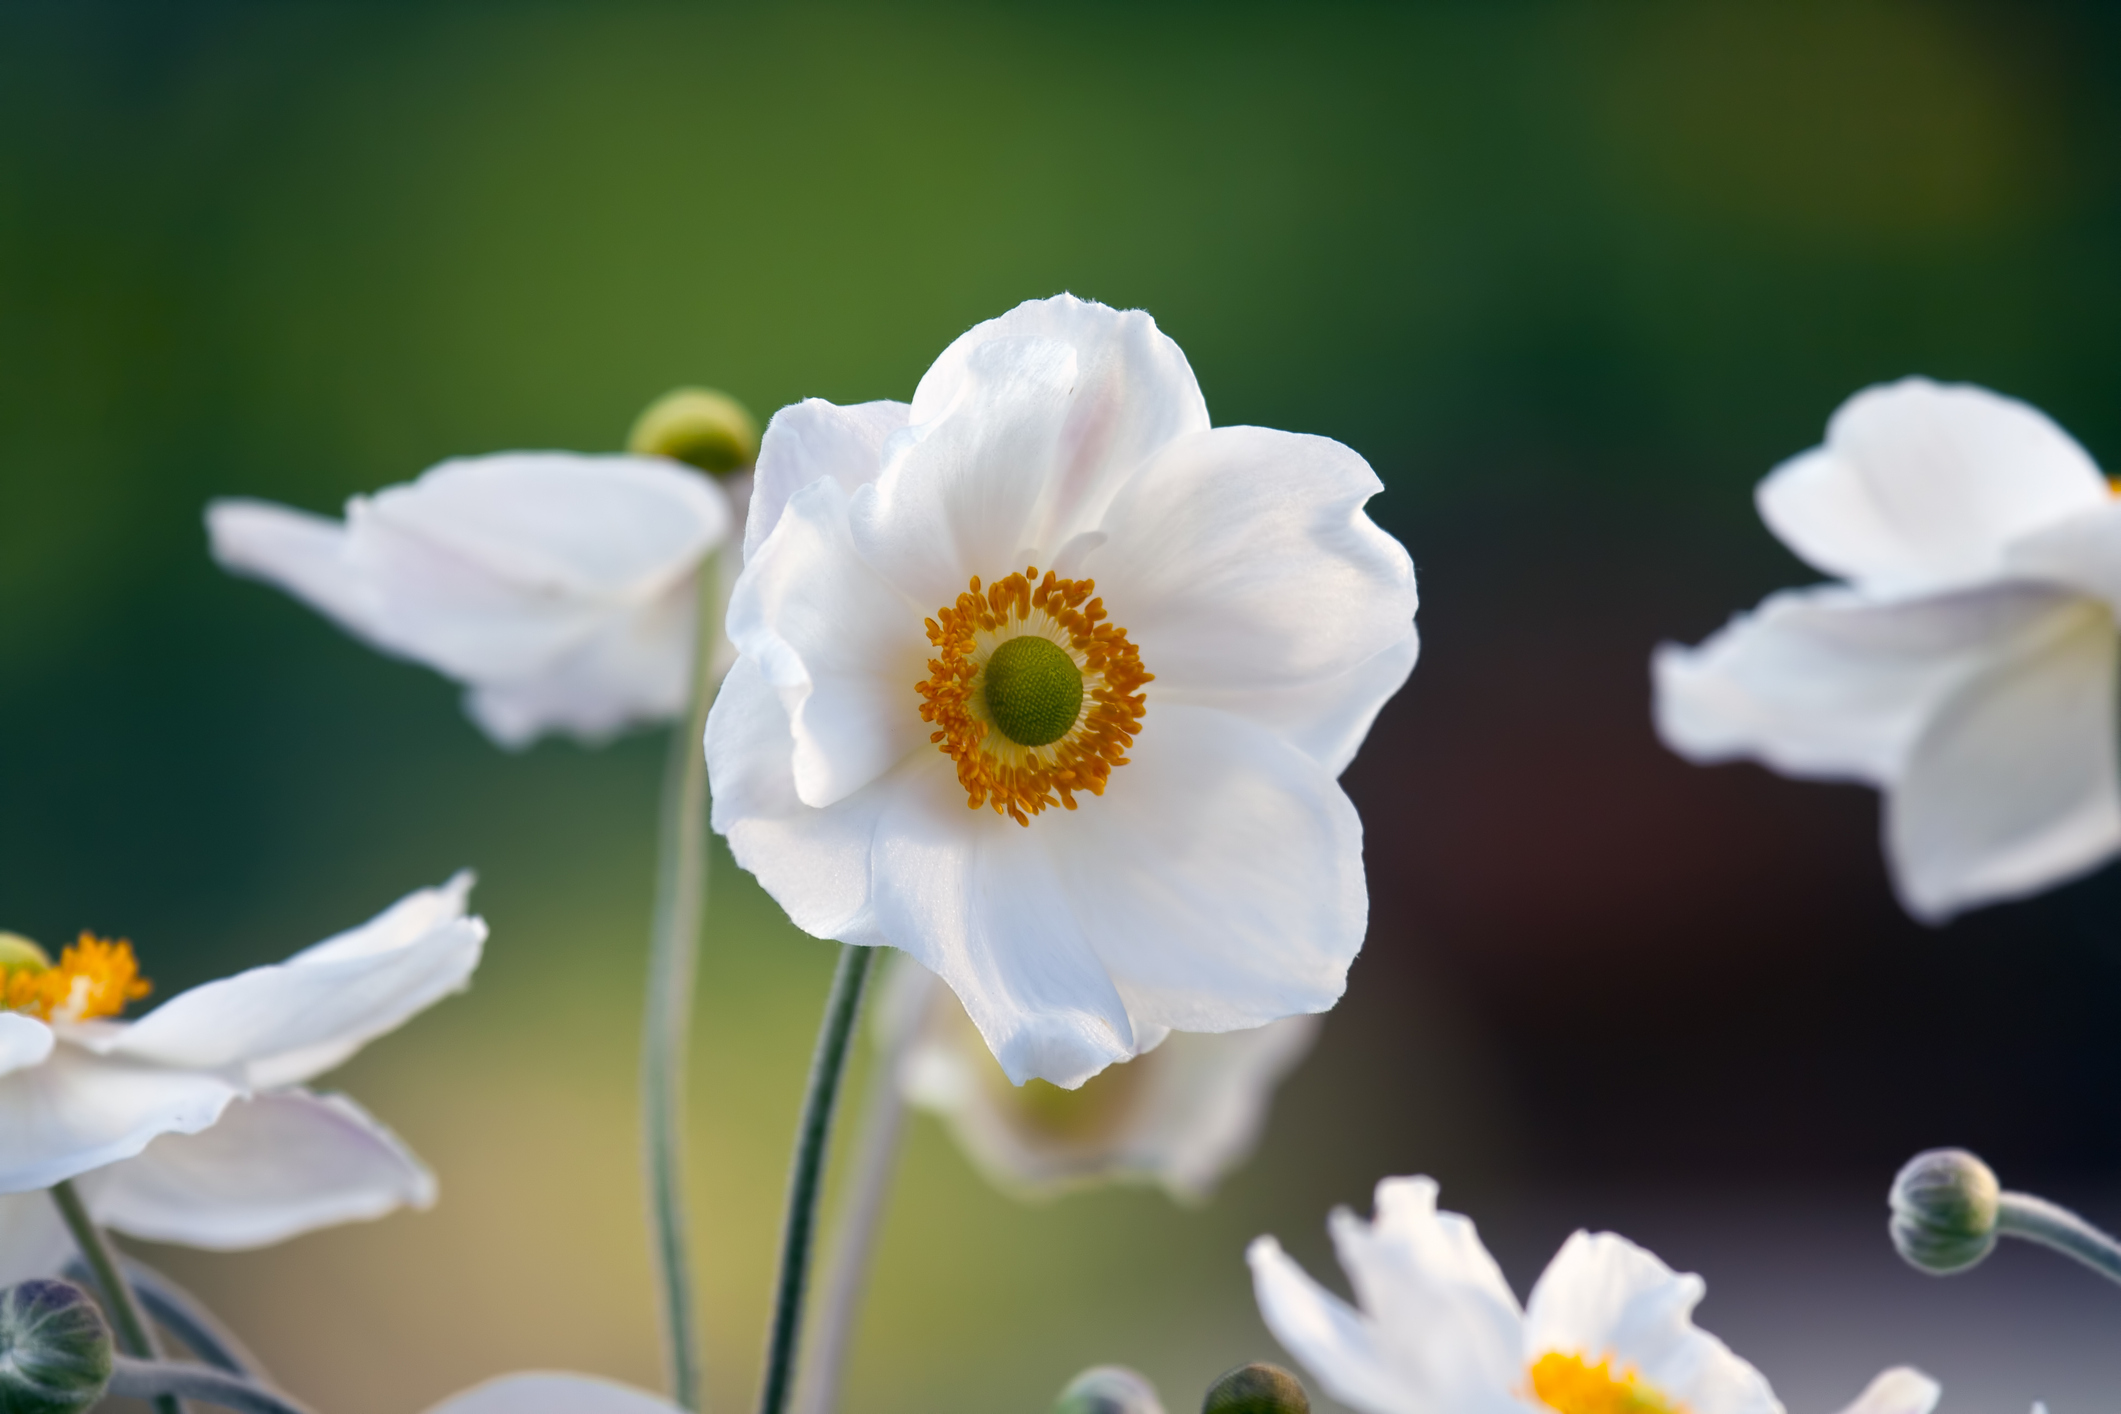 Anemone 'Honorine Jobert' the perfect fall flower.